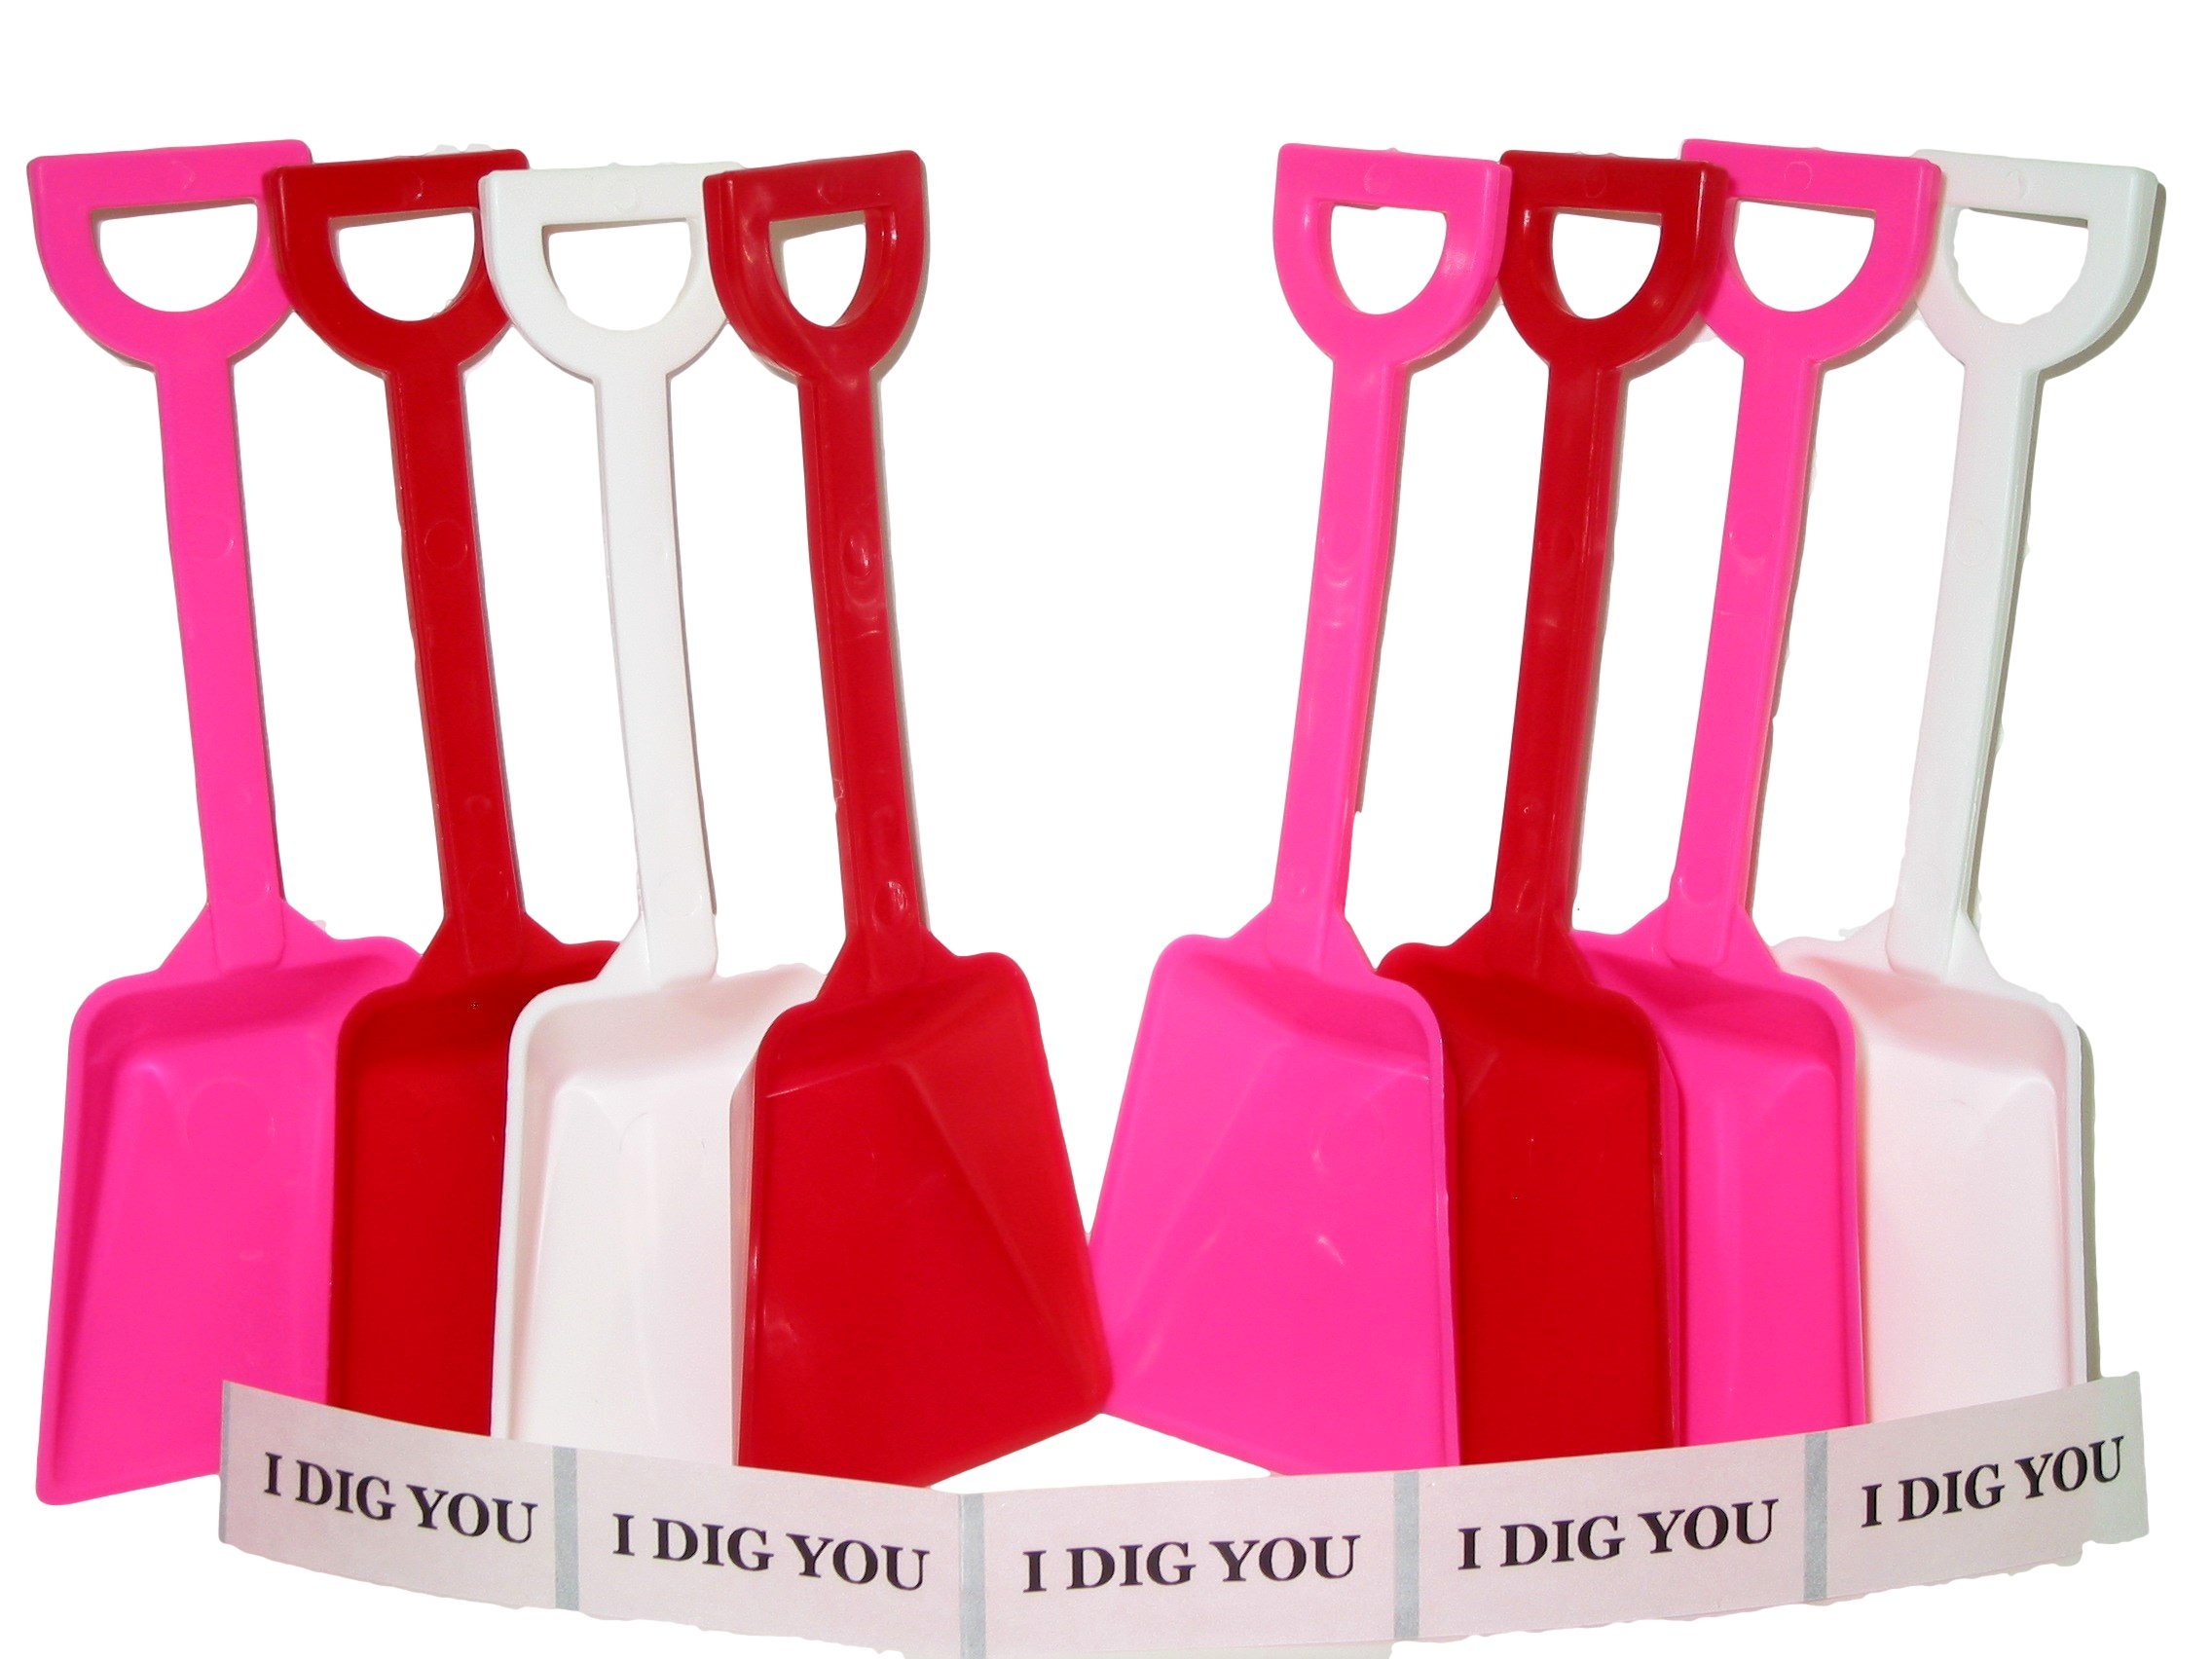 Small Toy Plastic Shovels Red Pink & White, 50 Pack, 7 Inches Tall, 50 I Dig You Stickers by Jean's Plastics